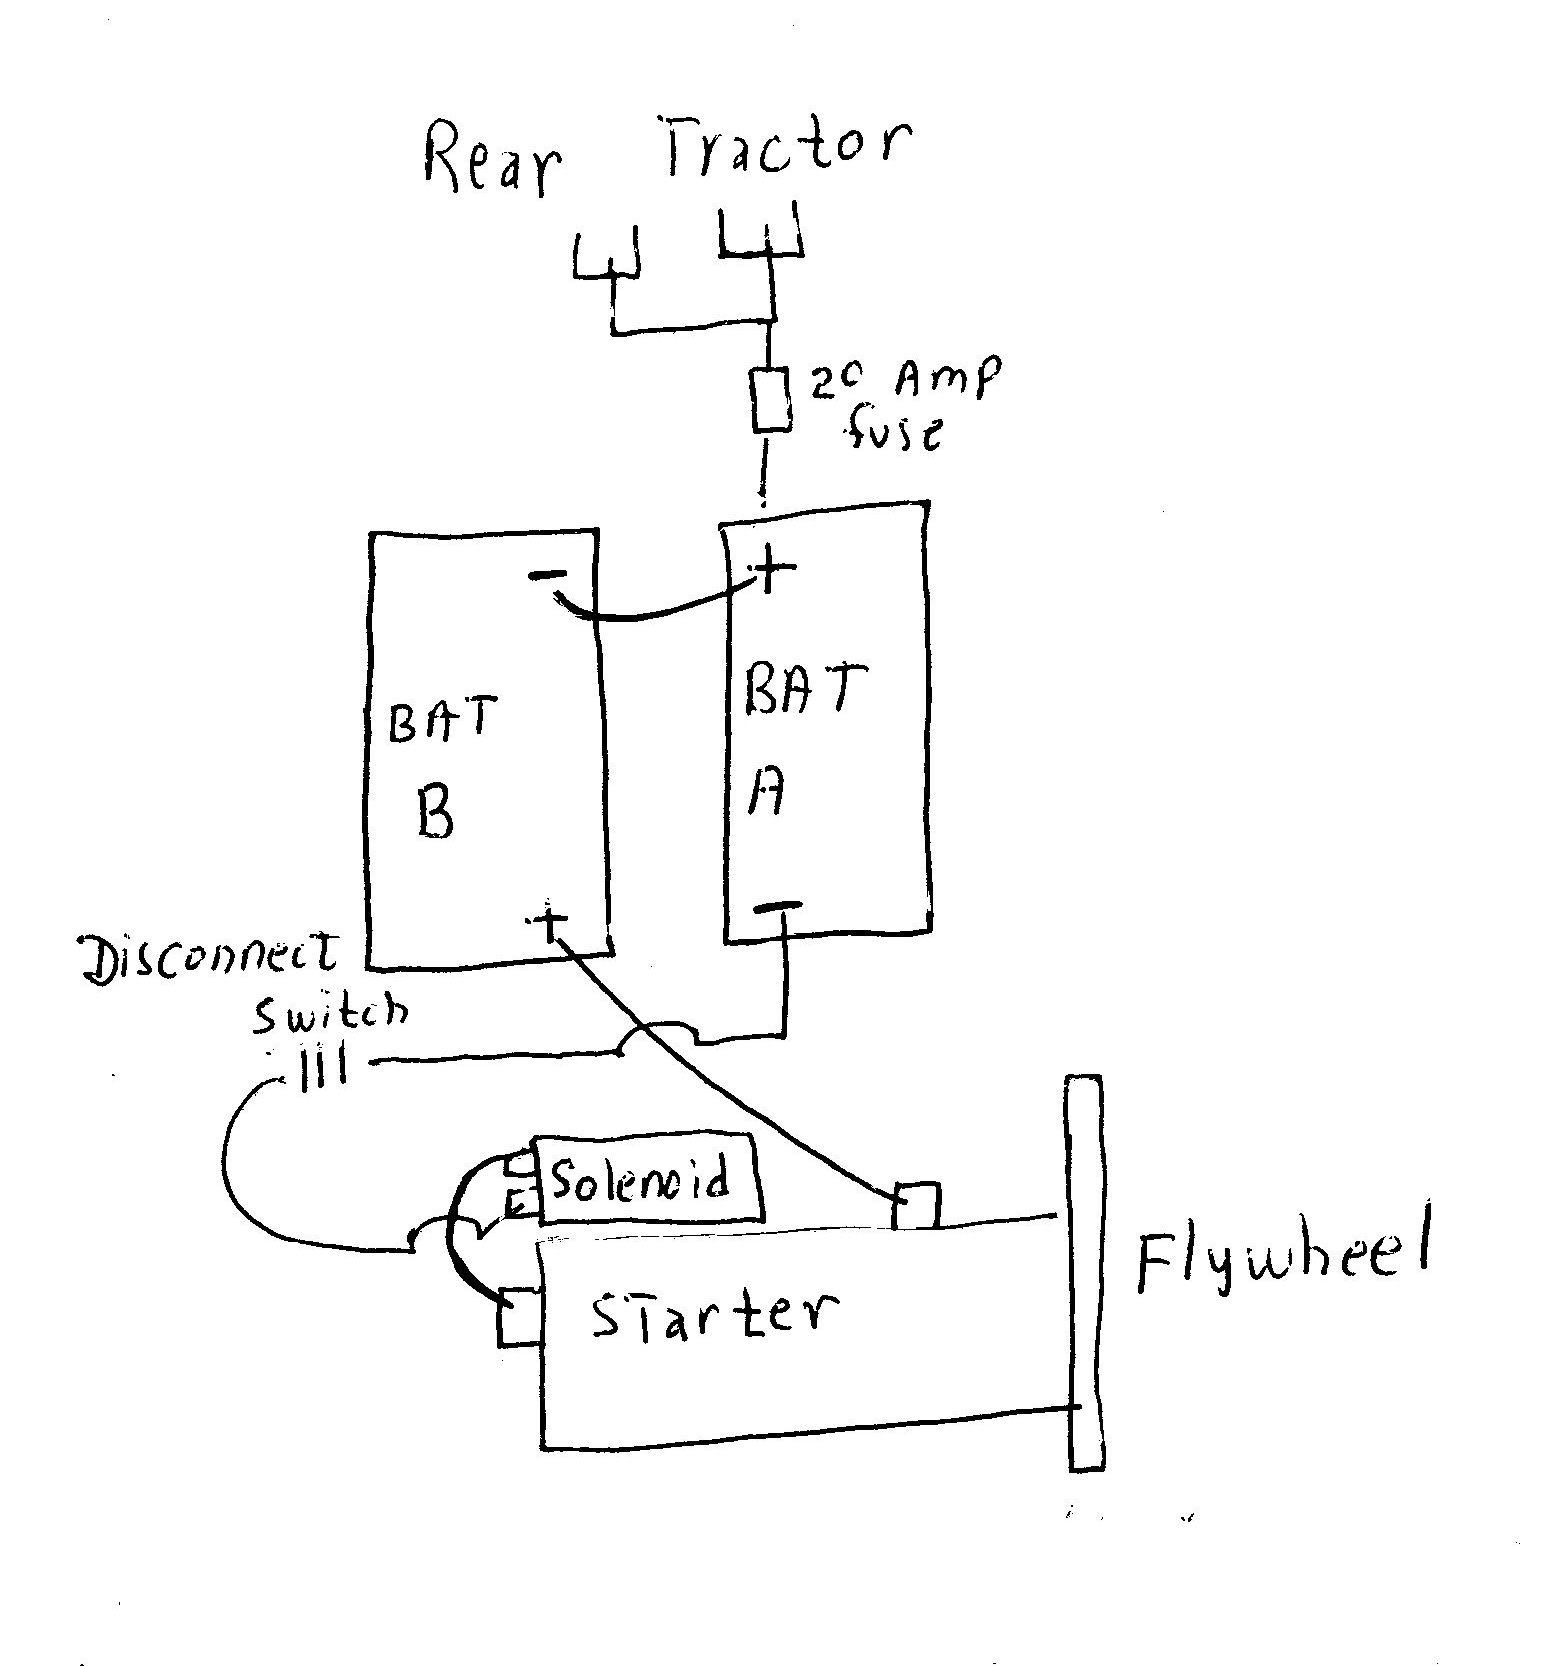 battery_hookup the john deere 24 volt electrical system explained john deere 3020 wiring diagram pdf at mifinder.co